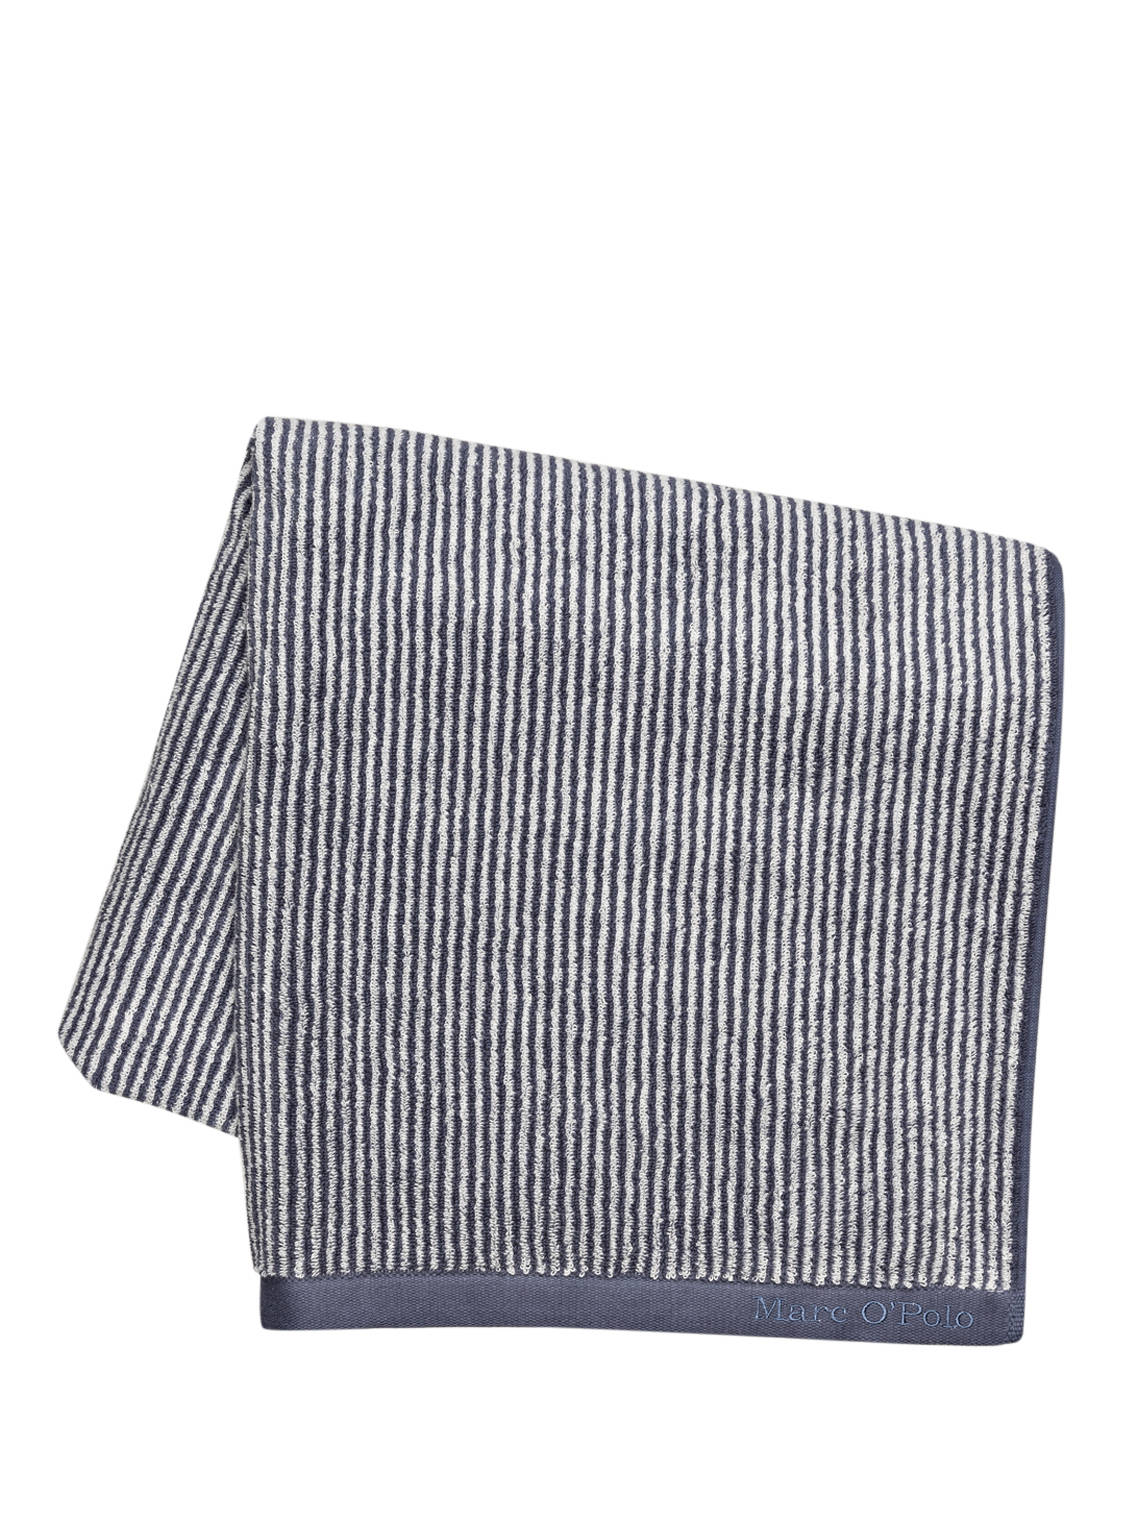 Marc O'polo Badetuch Timeless Stripe blau von Marc O'Polo